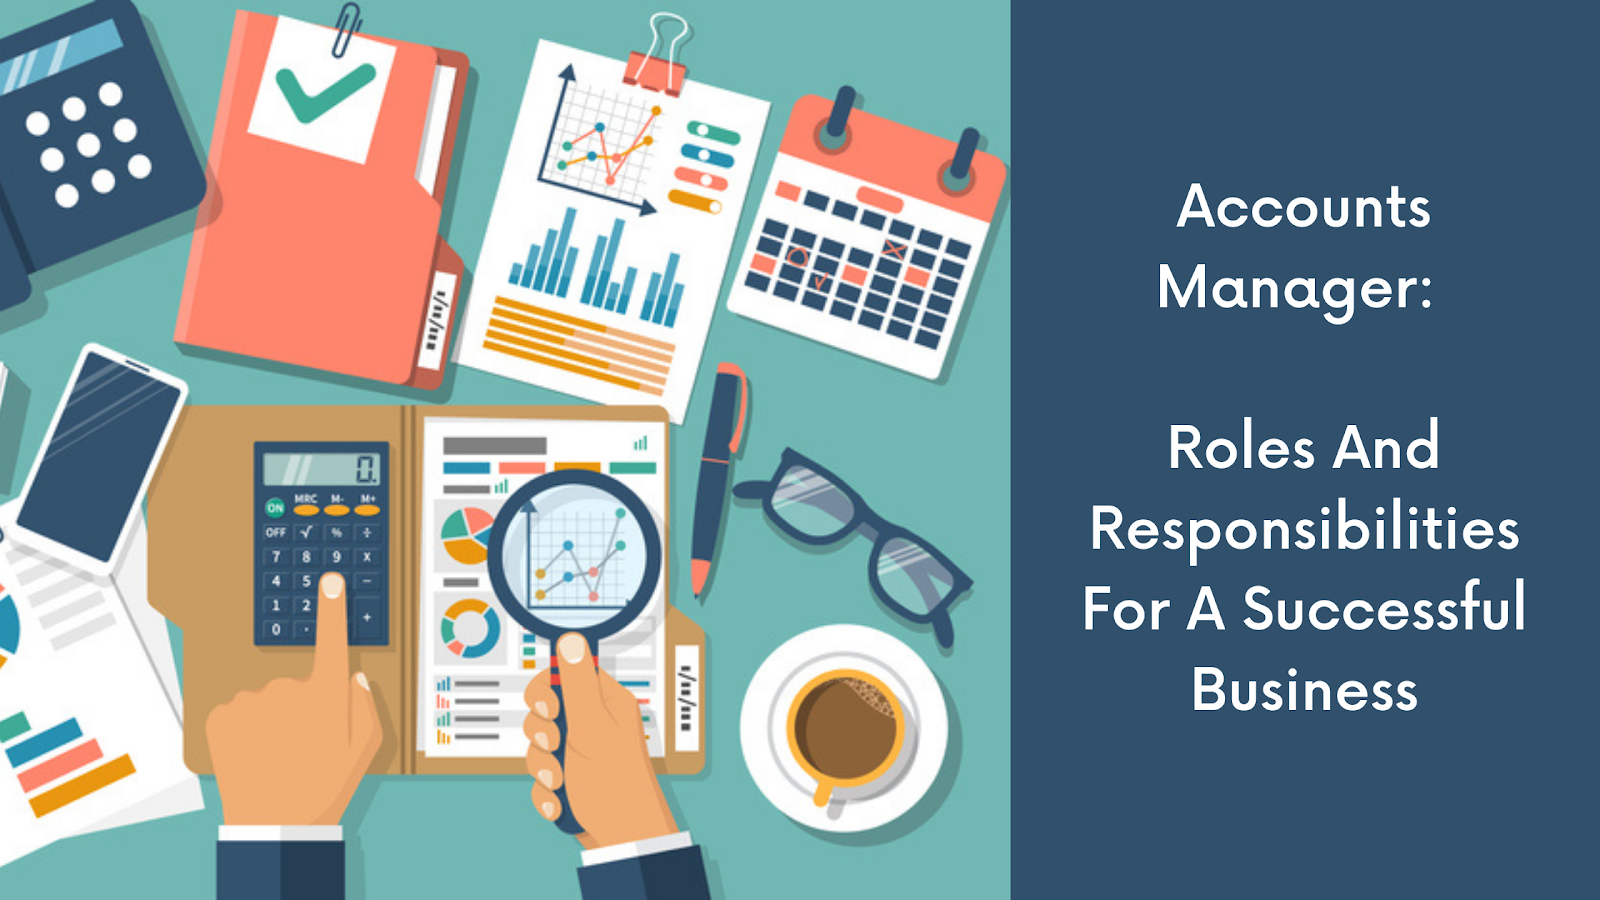 Accounts Manager: Roles And Responsibilities For A Successful Business